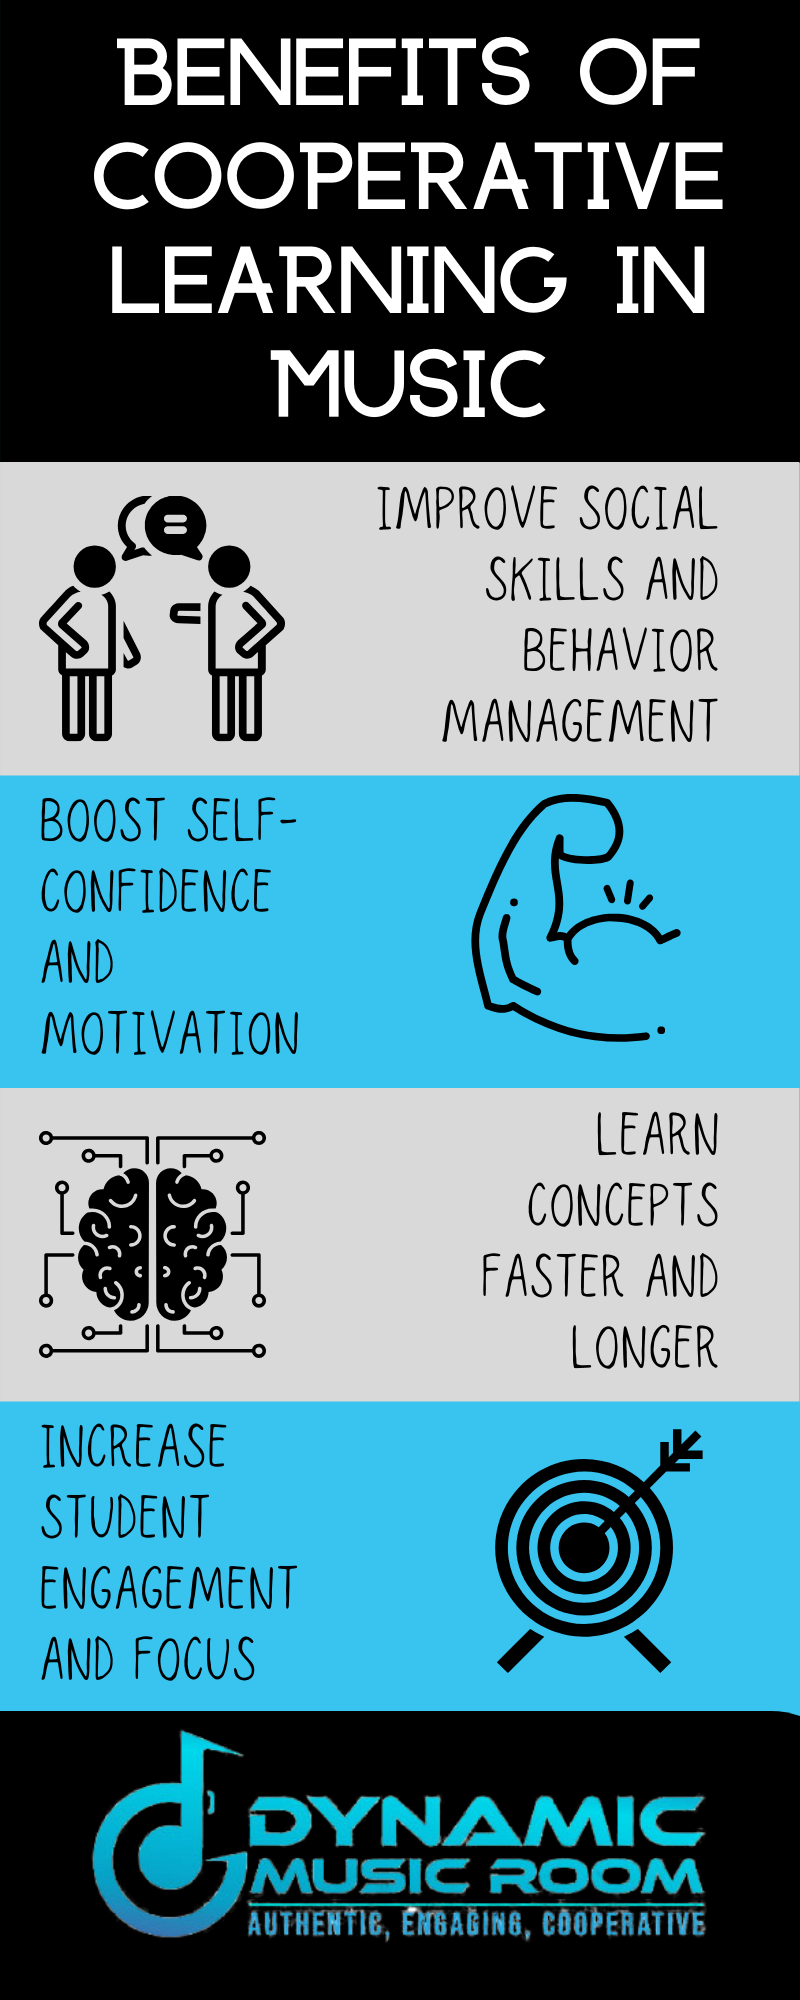 image benefits of cooperative learning in music infographic